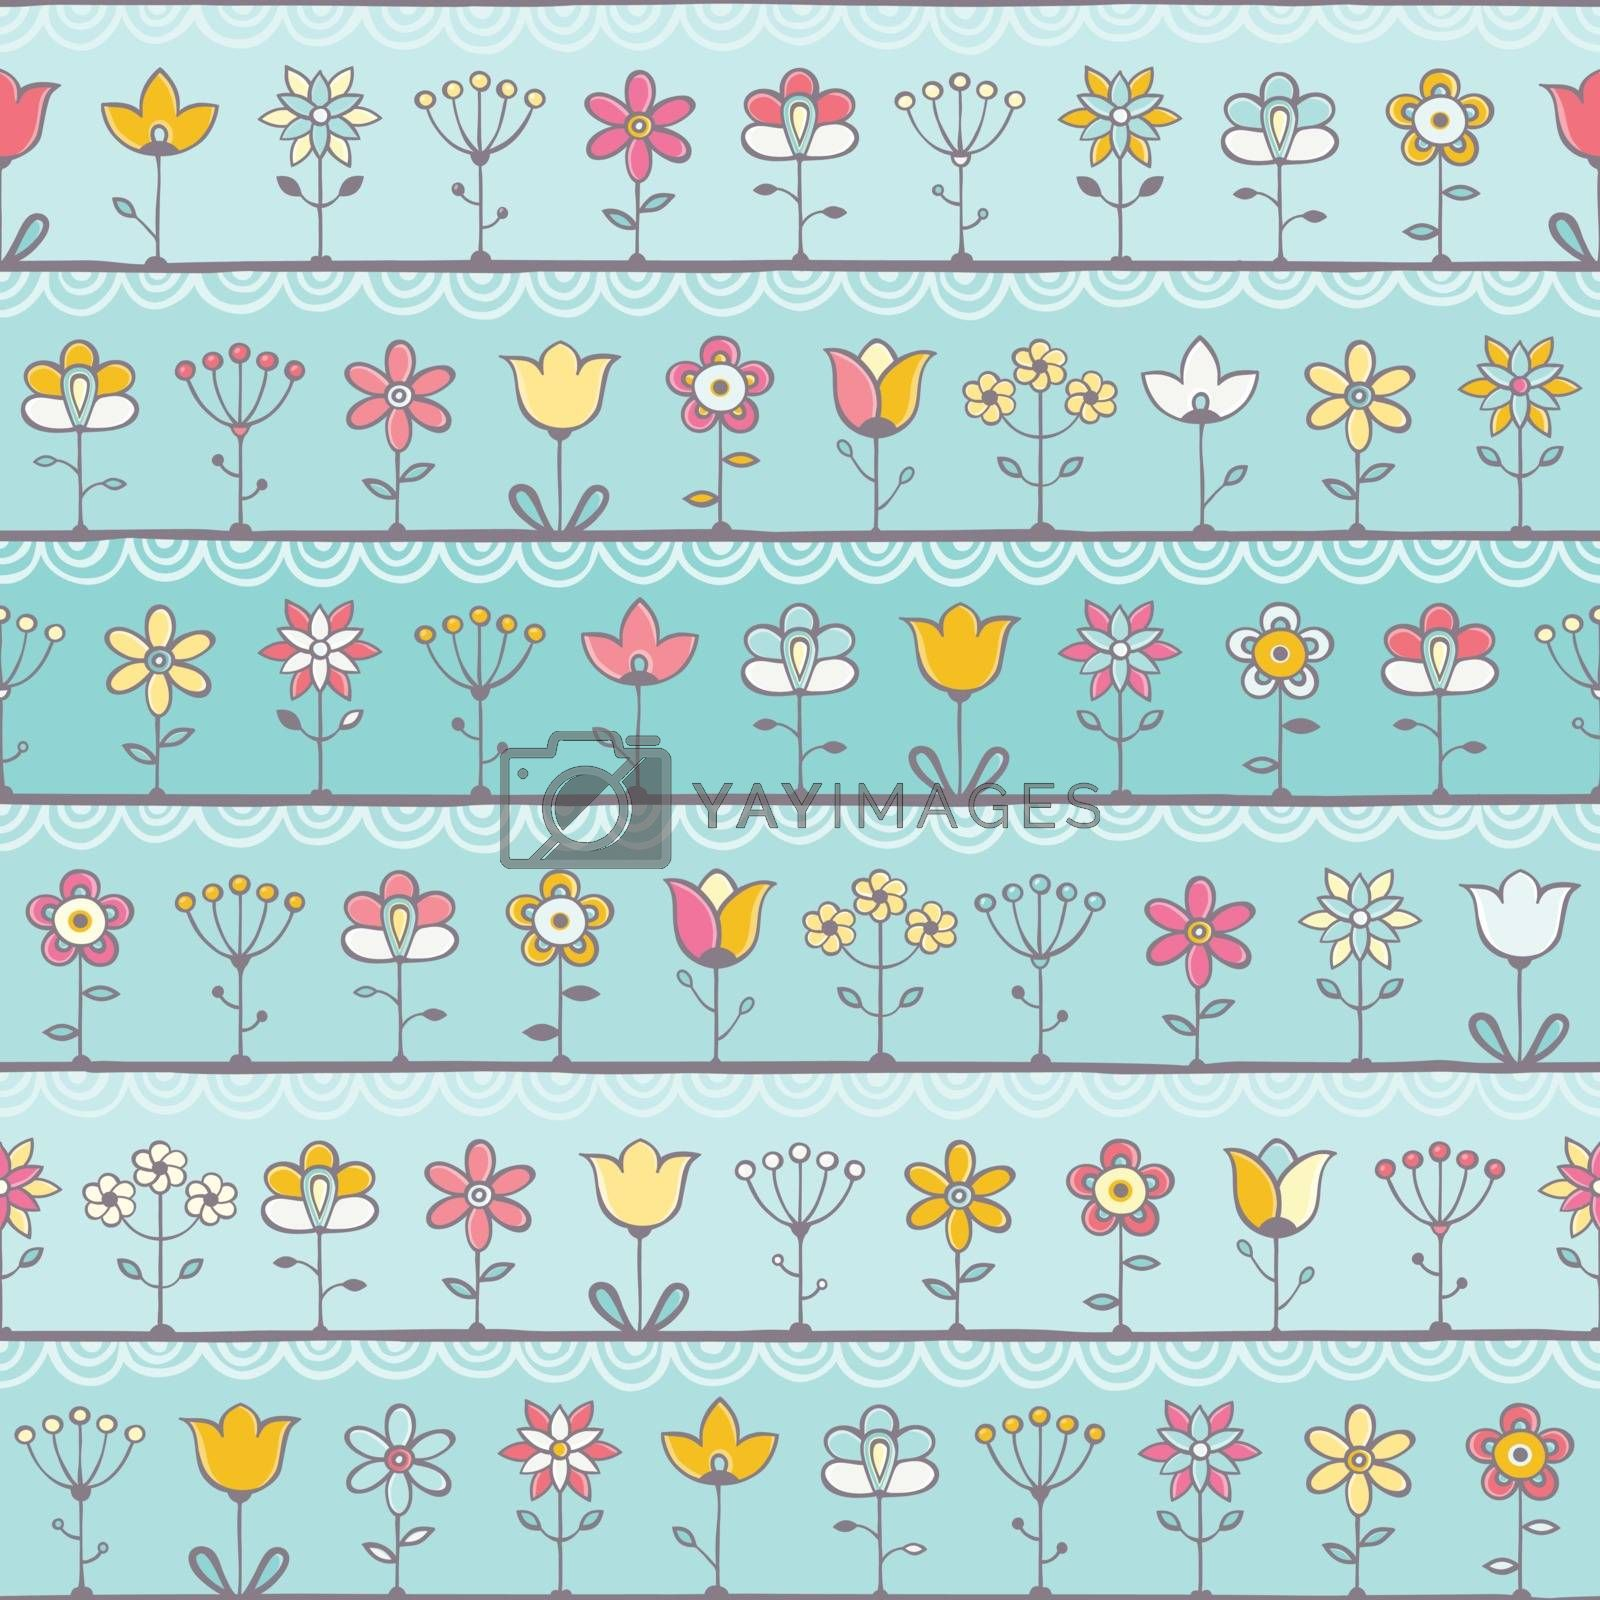 Royalty free image of Baby blue background with cute flowers by evdakovka